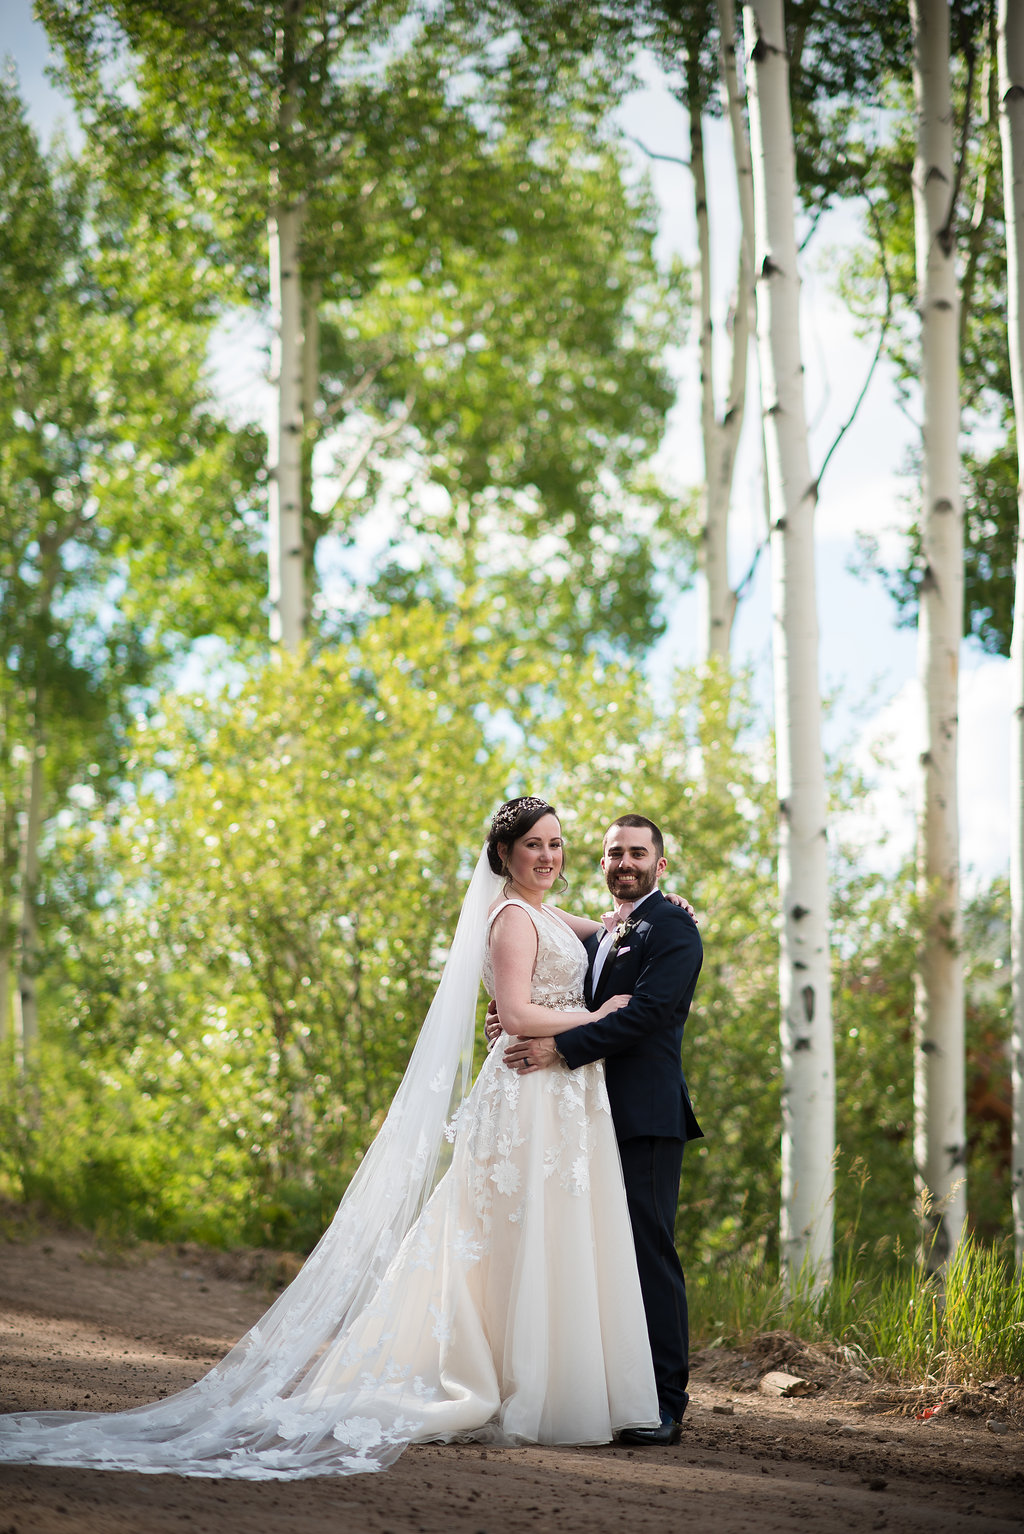 Lela Rose The Vineyard, Lela Rose Denver CO, Lela Rose, Little White Dress Bridal Shop, Vail Wedding, Rocky Mountain Wedding